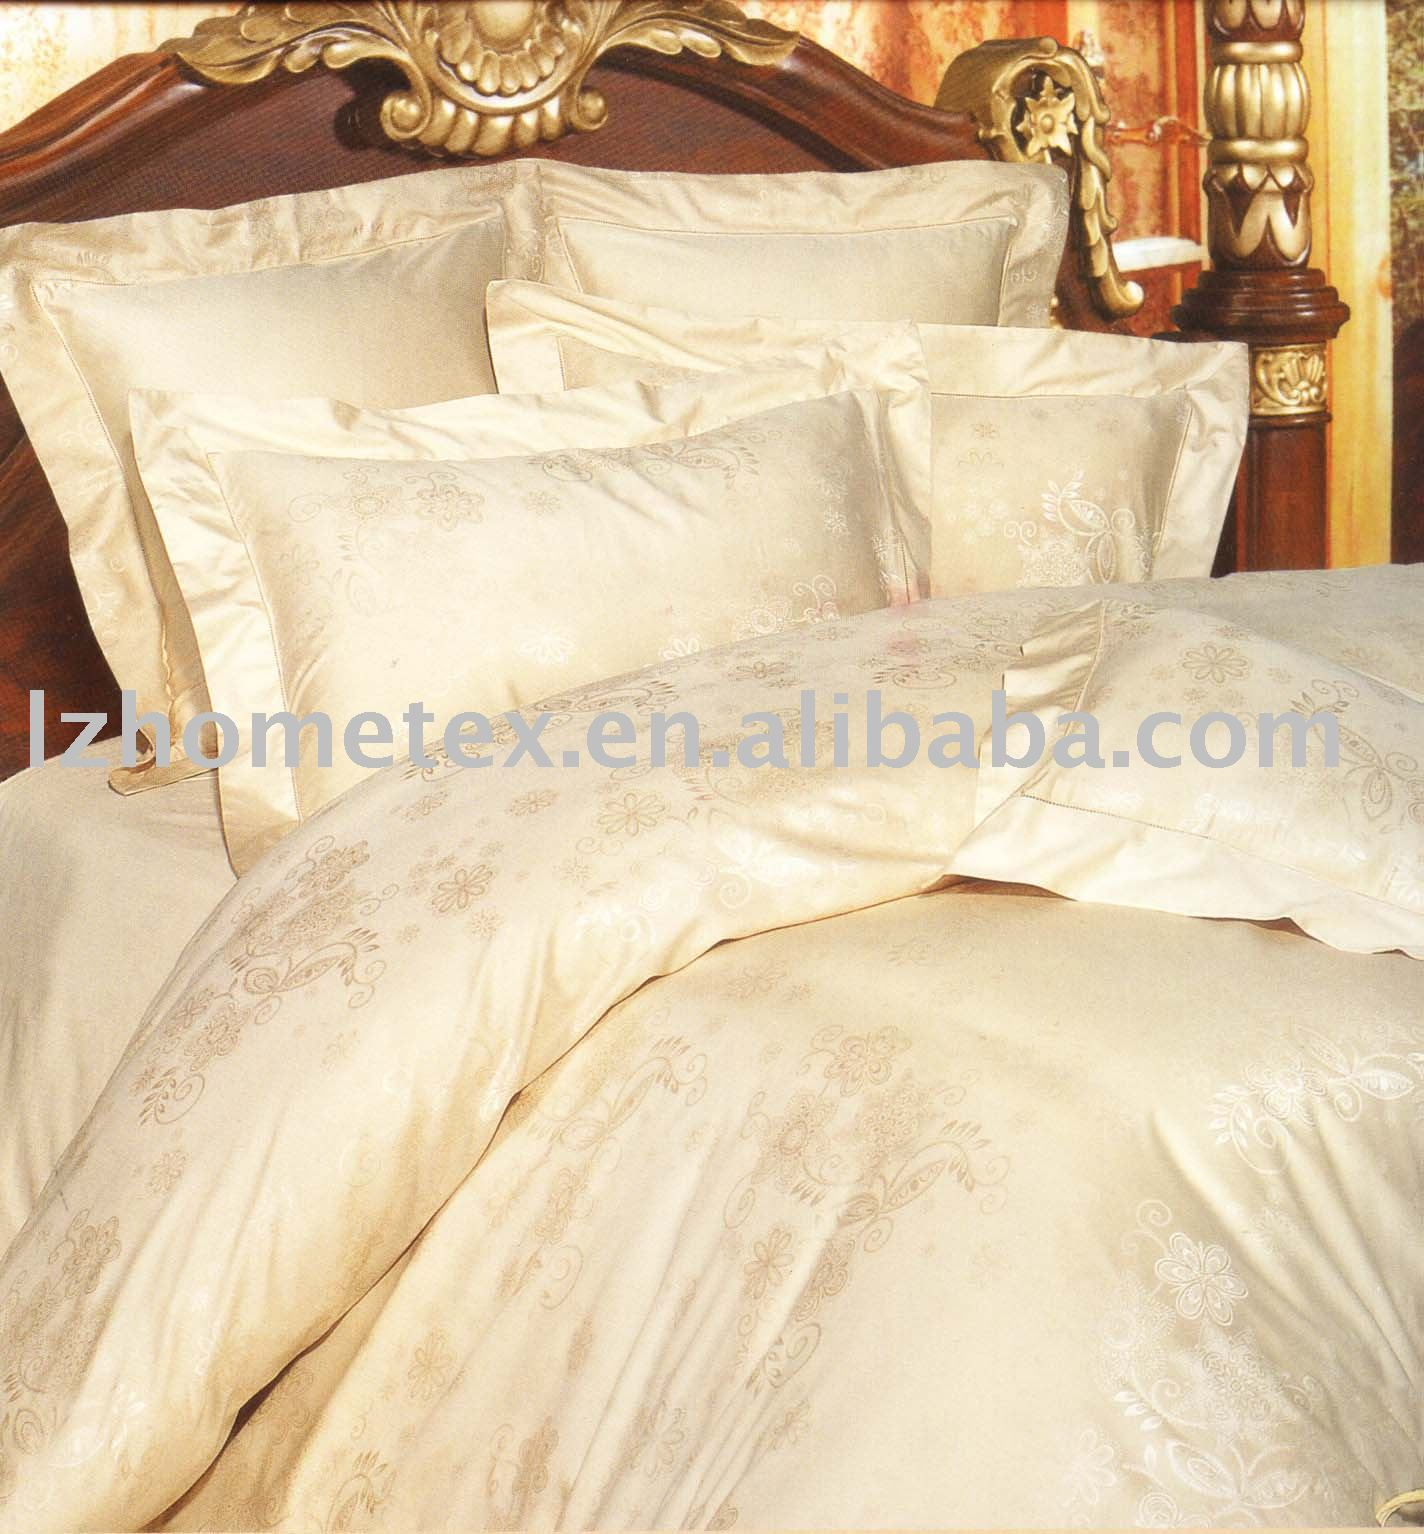 Sateen/Jacquard bed bedding set